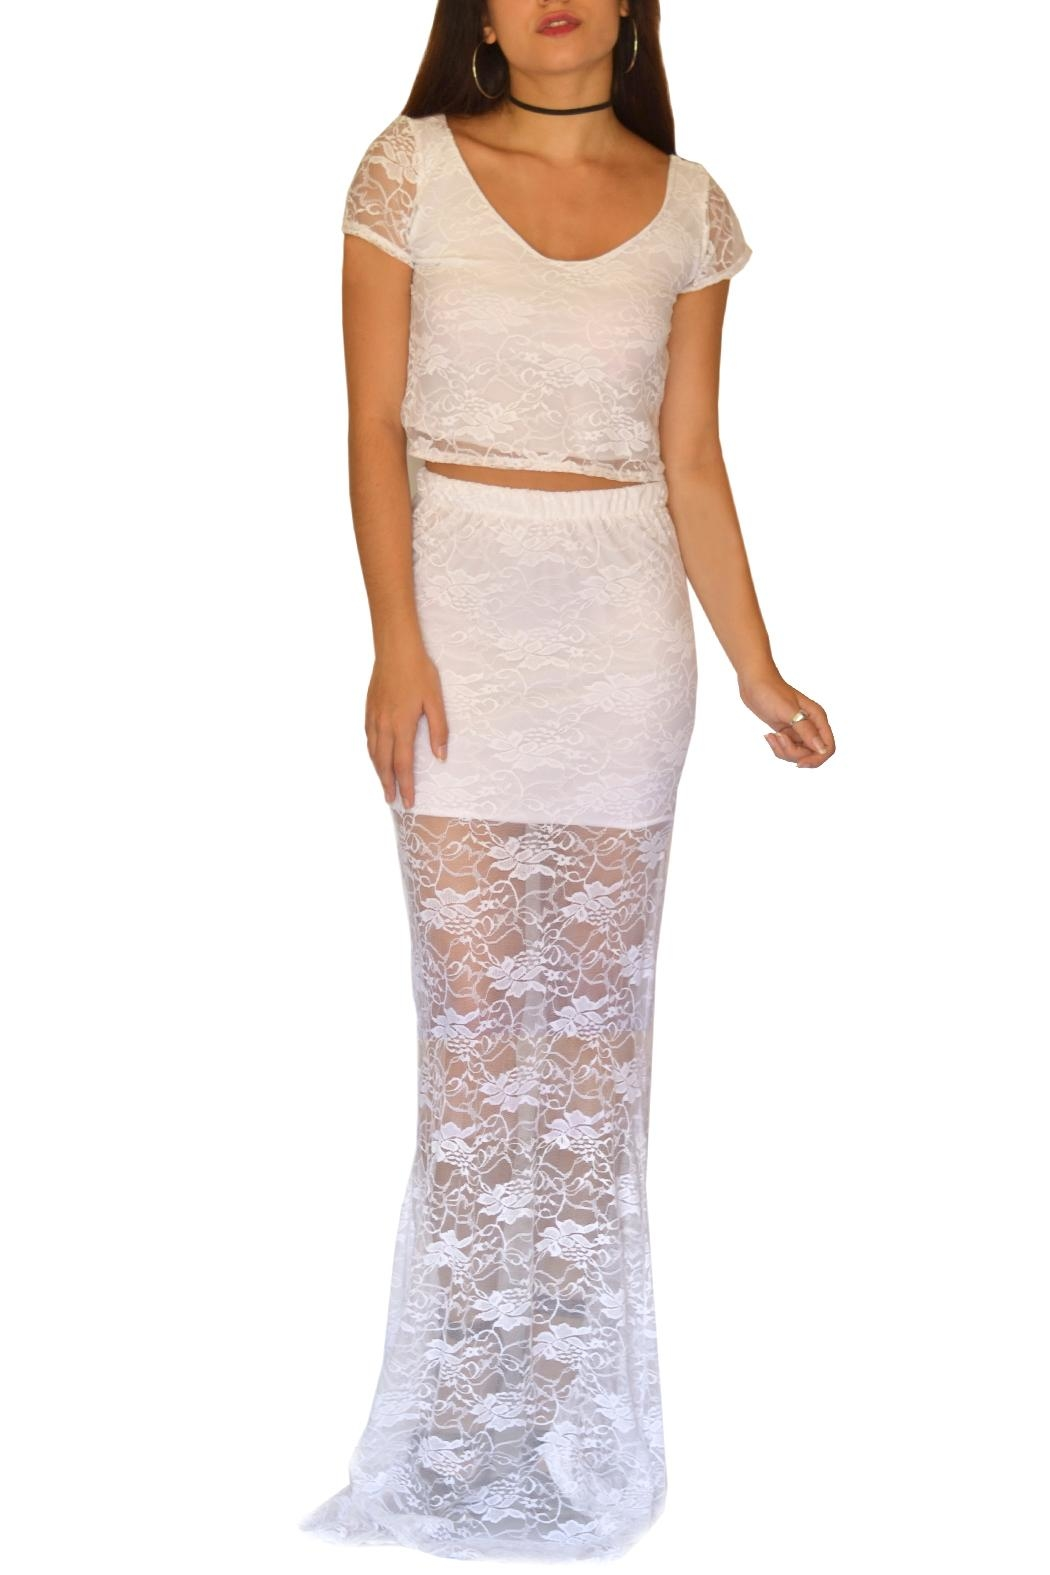 NUINABELOVE Mermaid Lace Skirt - Main Image